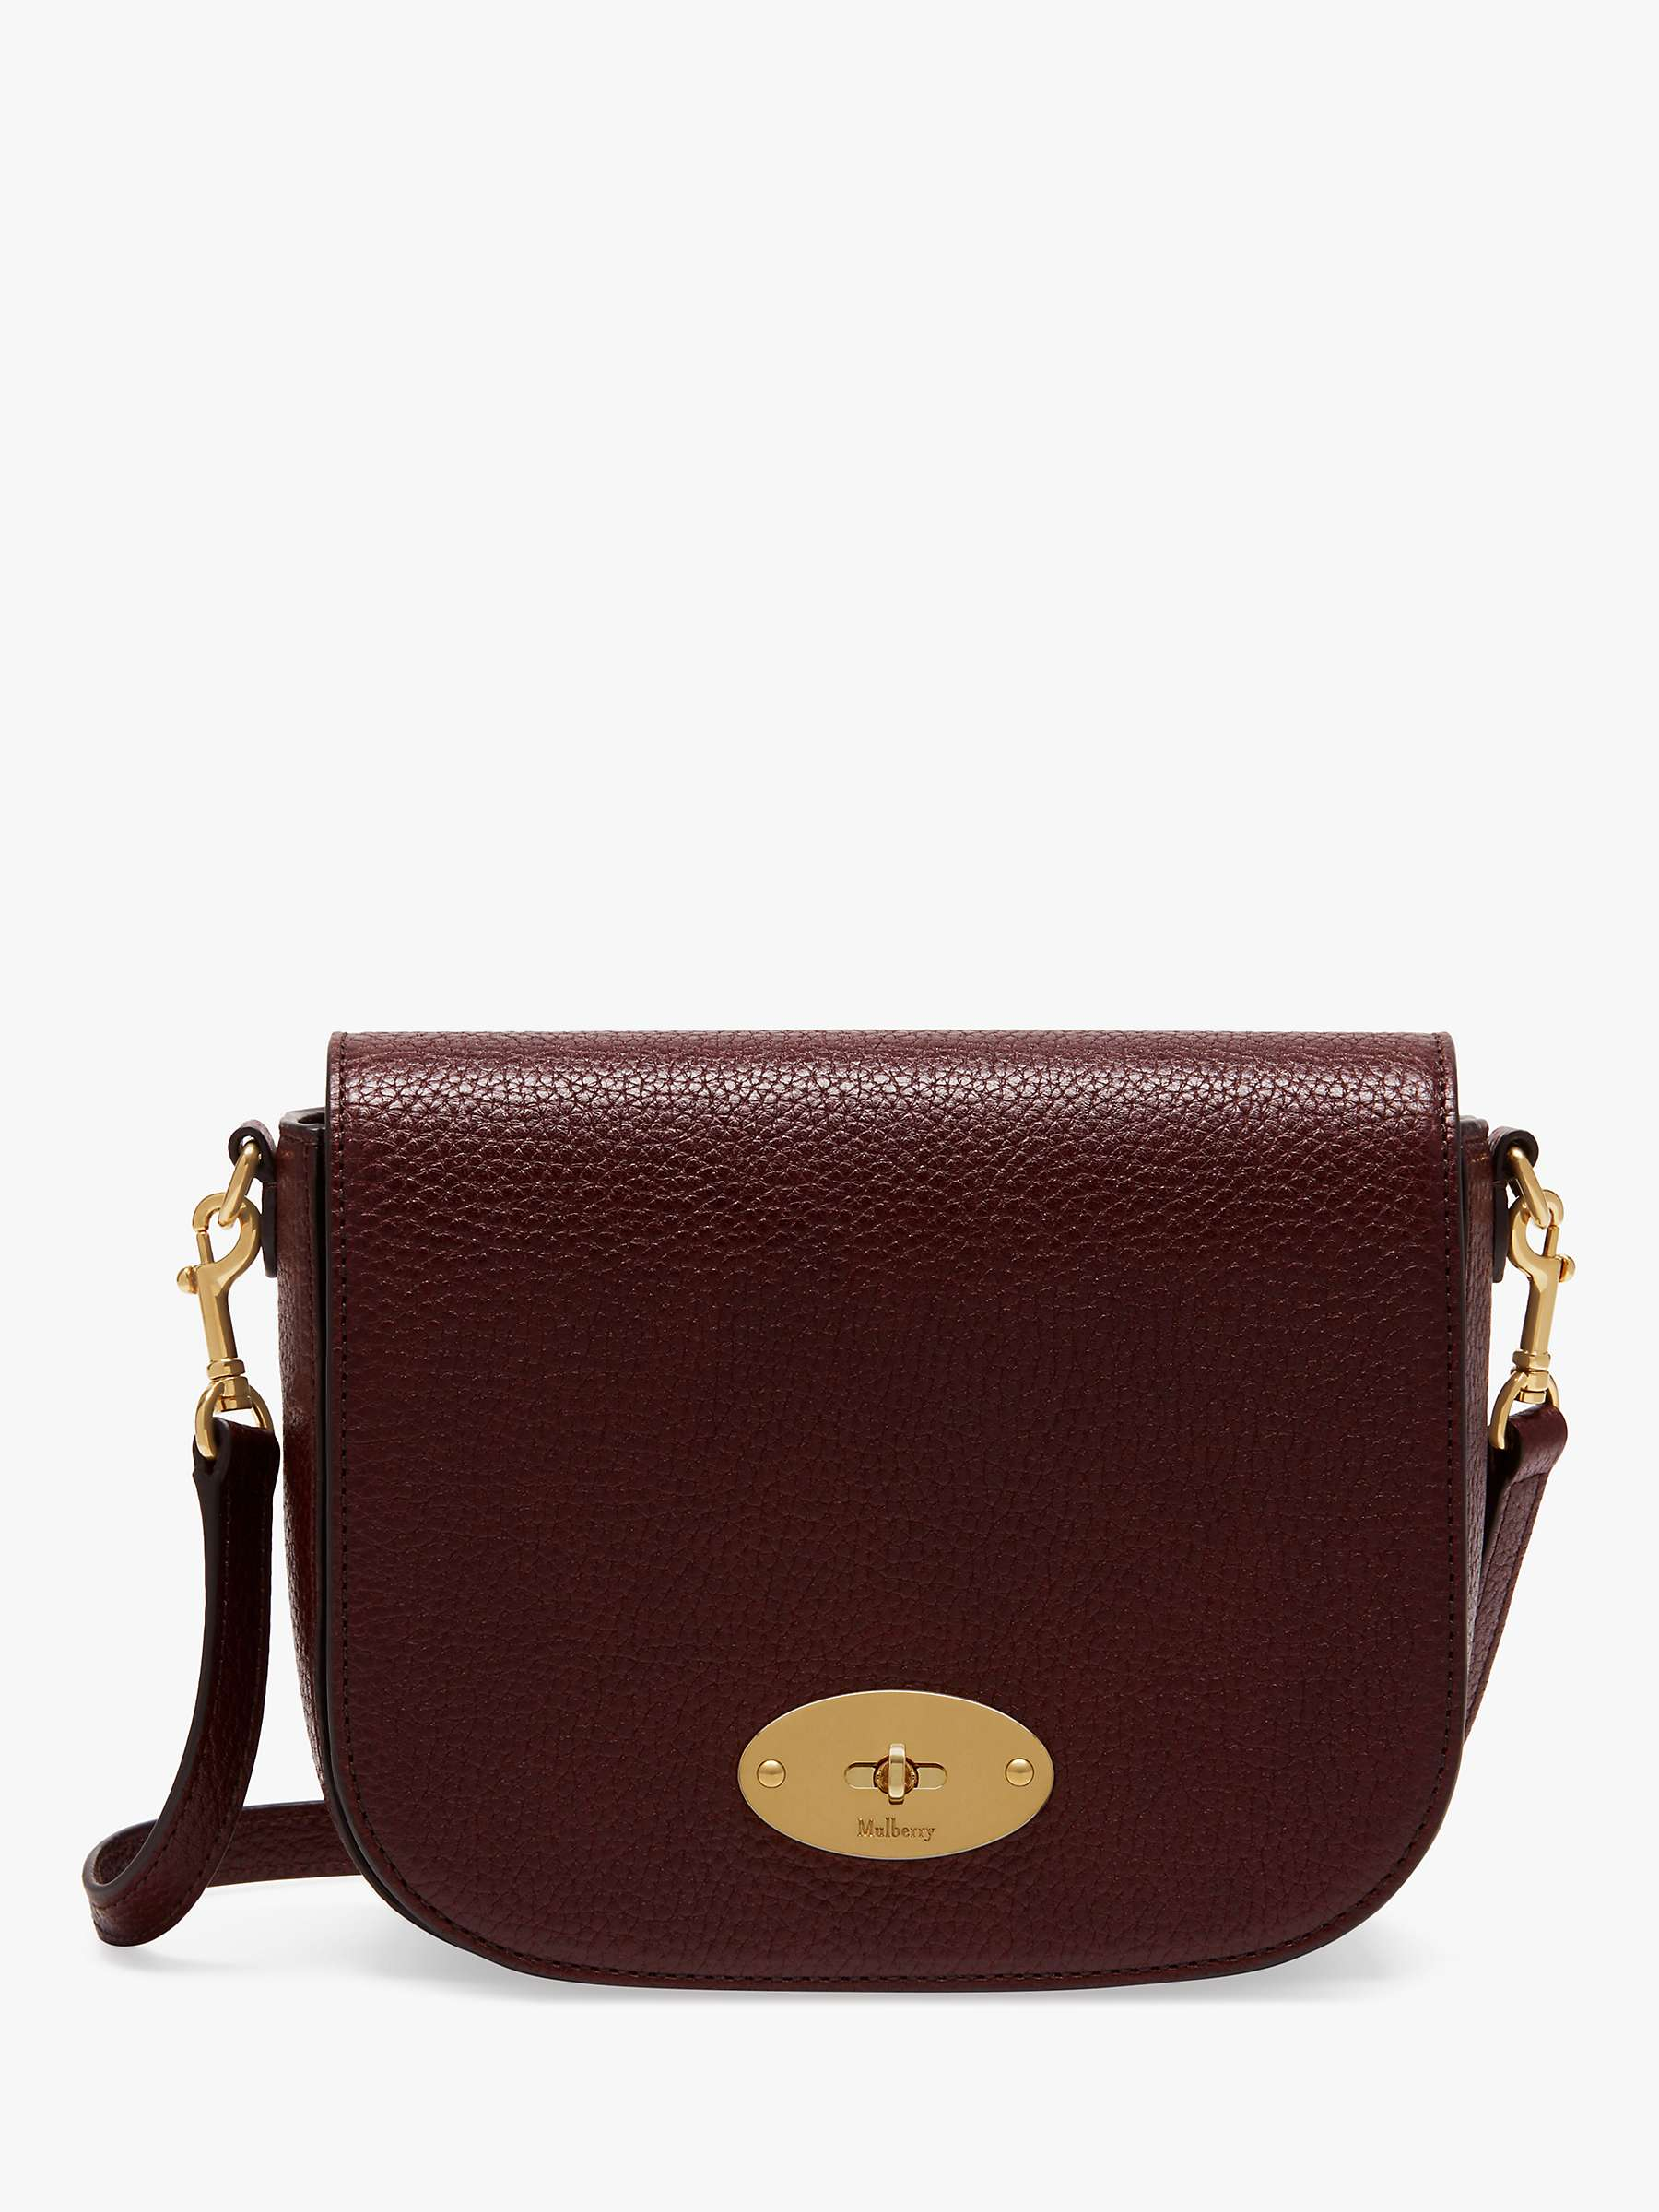 Mulberry Small Darley Grain Veg Tanned Leather Satchel Bag, Oxblood by John Lewis